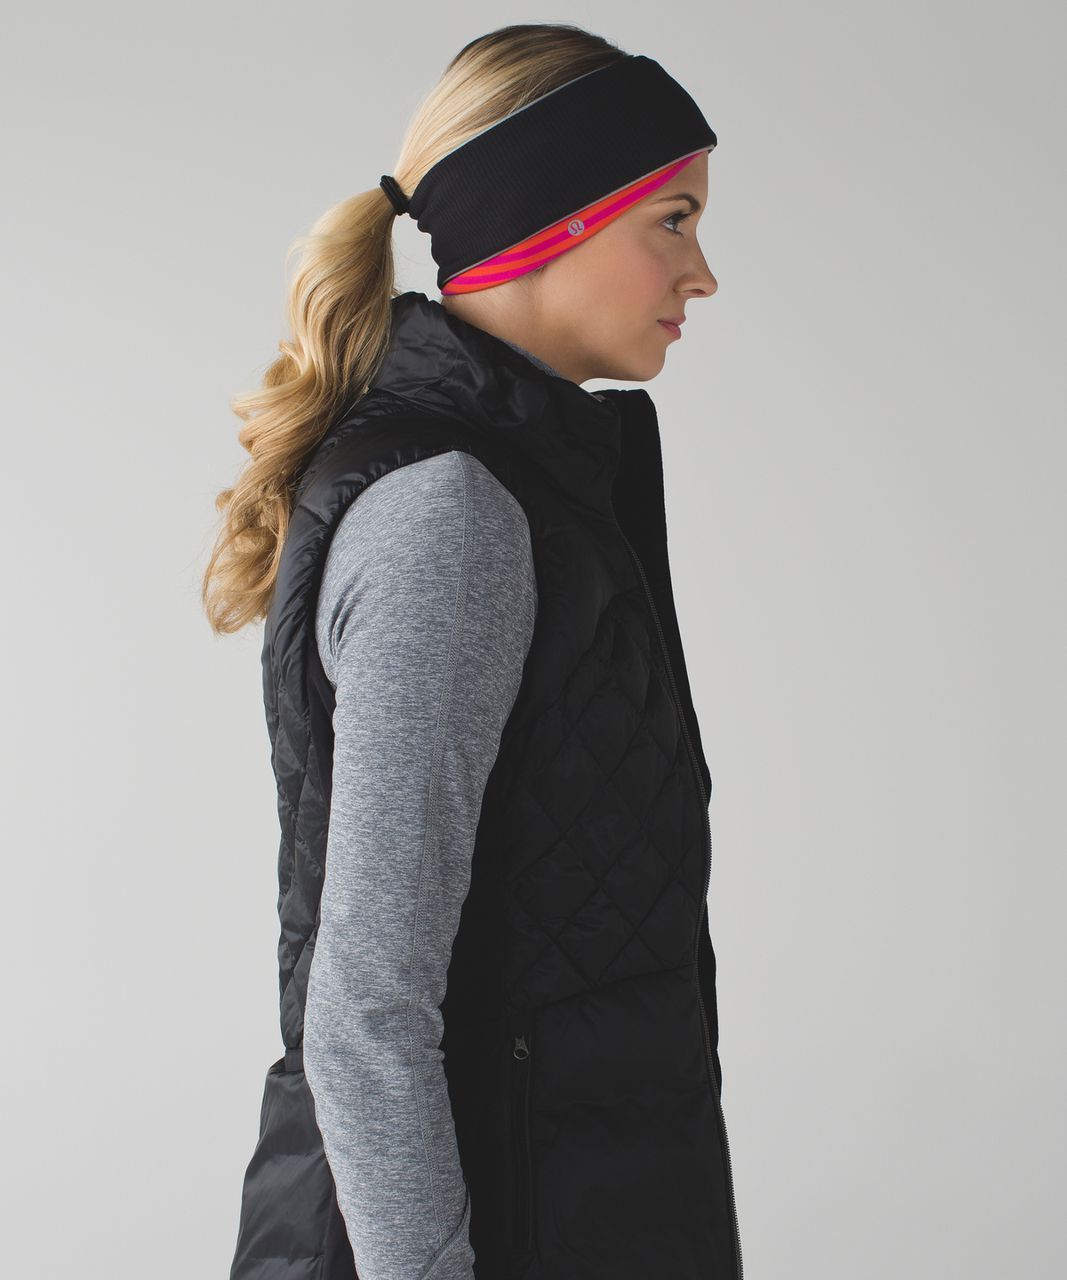 Lululemon Run And Done Ear Warmer - Classic Stripe Jewelled Magenta Red October / Jewelled Magenta / Black